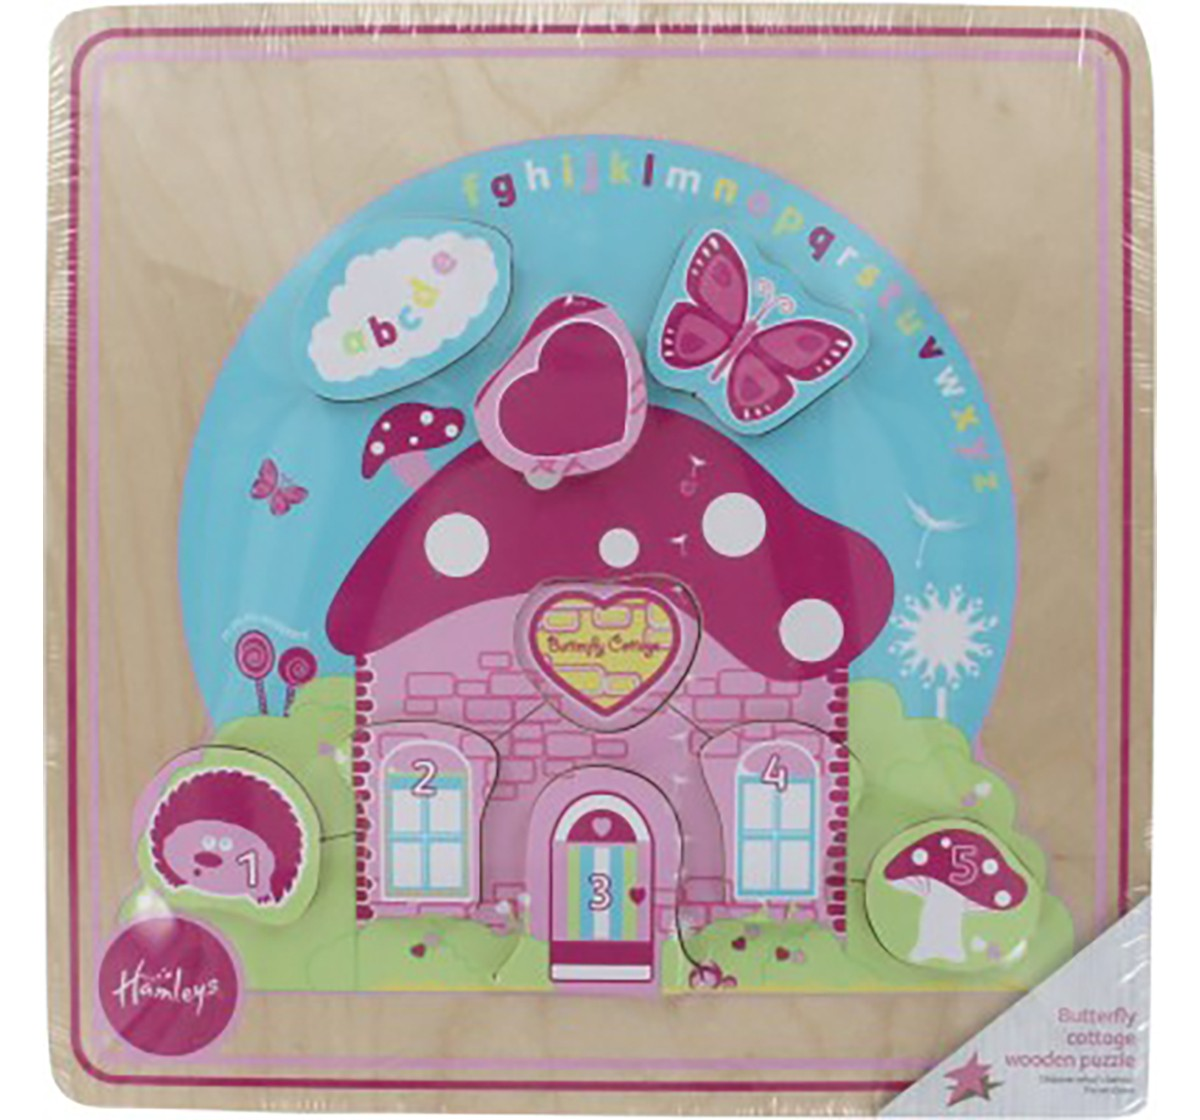 Hamleys Butterfly Cottage Wooden Puzzle Wooden Toys for Kids age 18M +